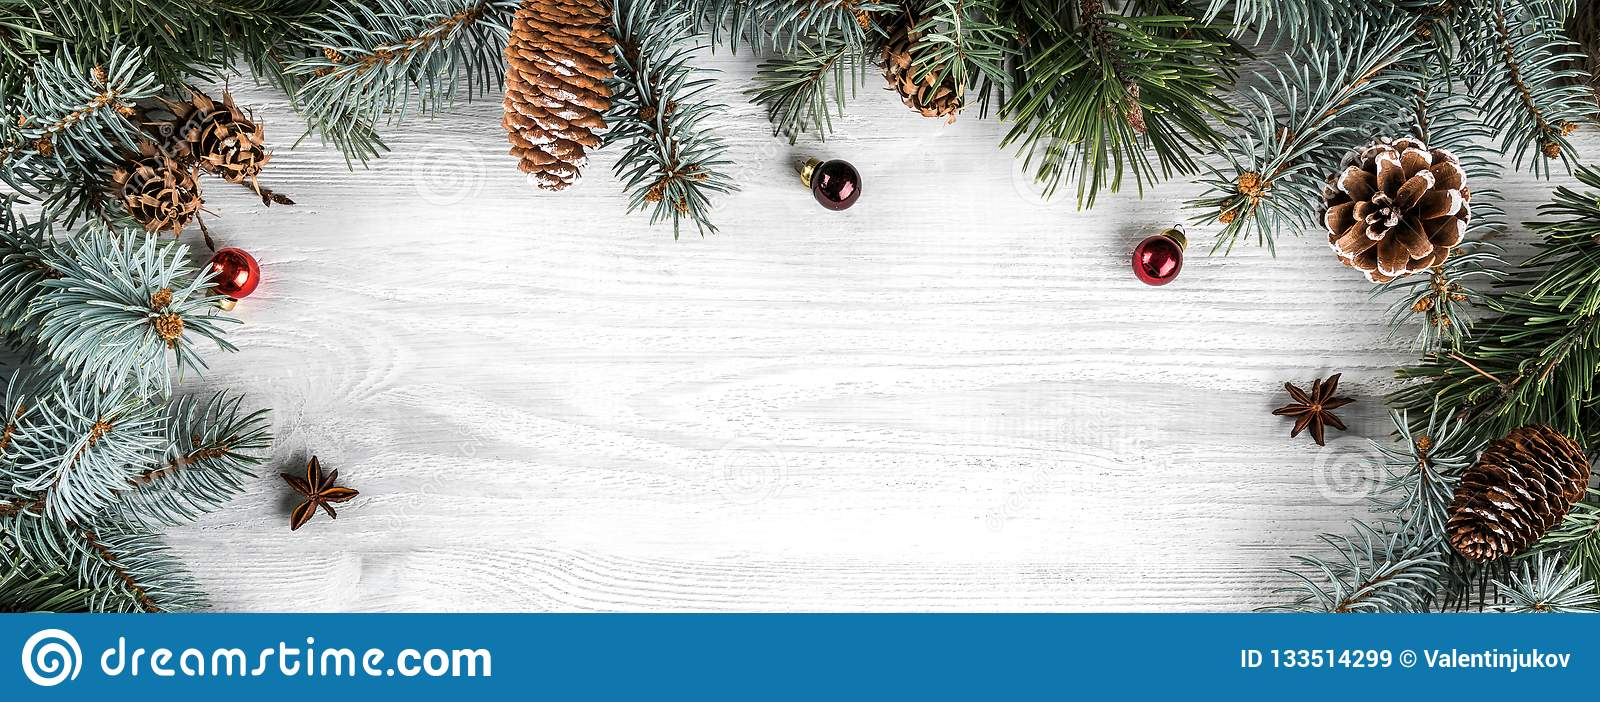 Creative frame made of Christmas fir branches on white wooden background with red decoration